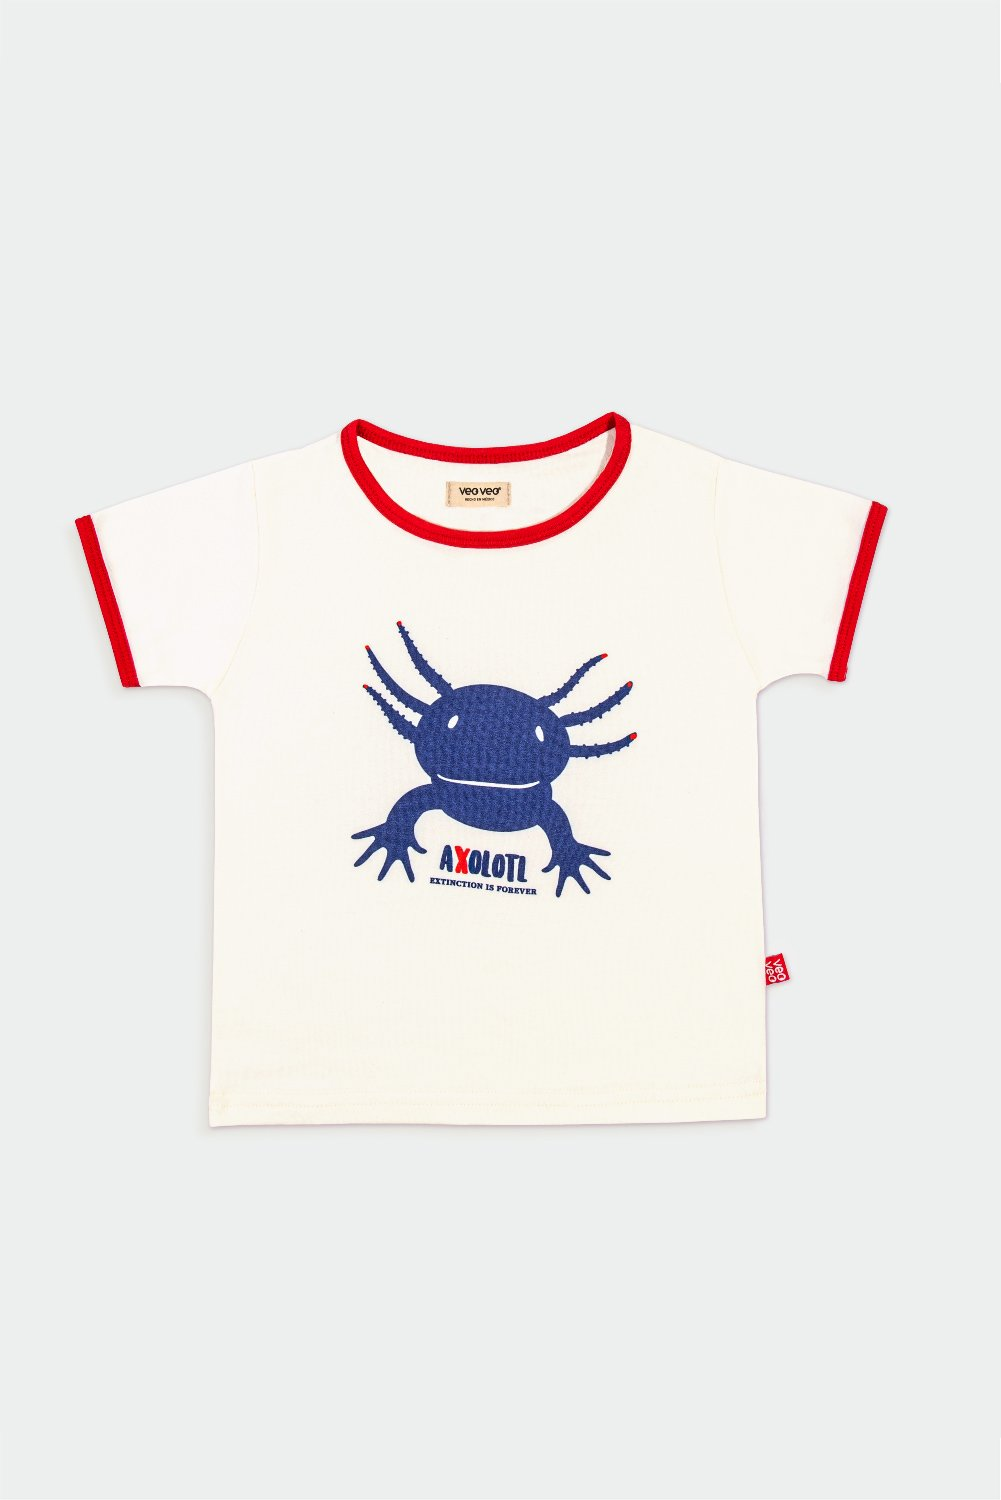 veoveo.store_t-shirt_kids_axolot_Product-front